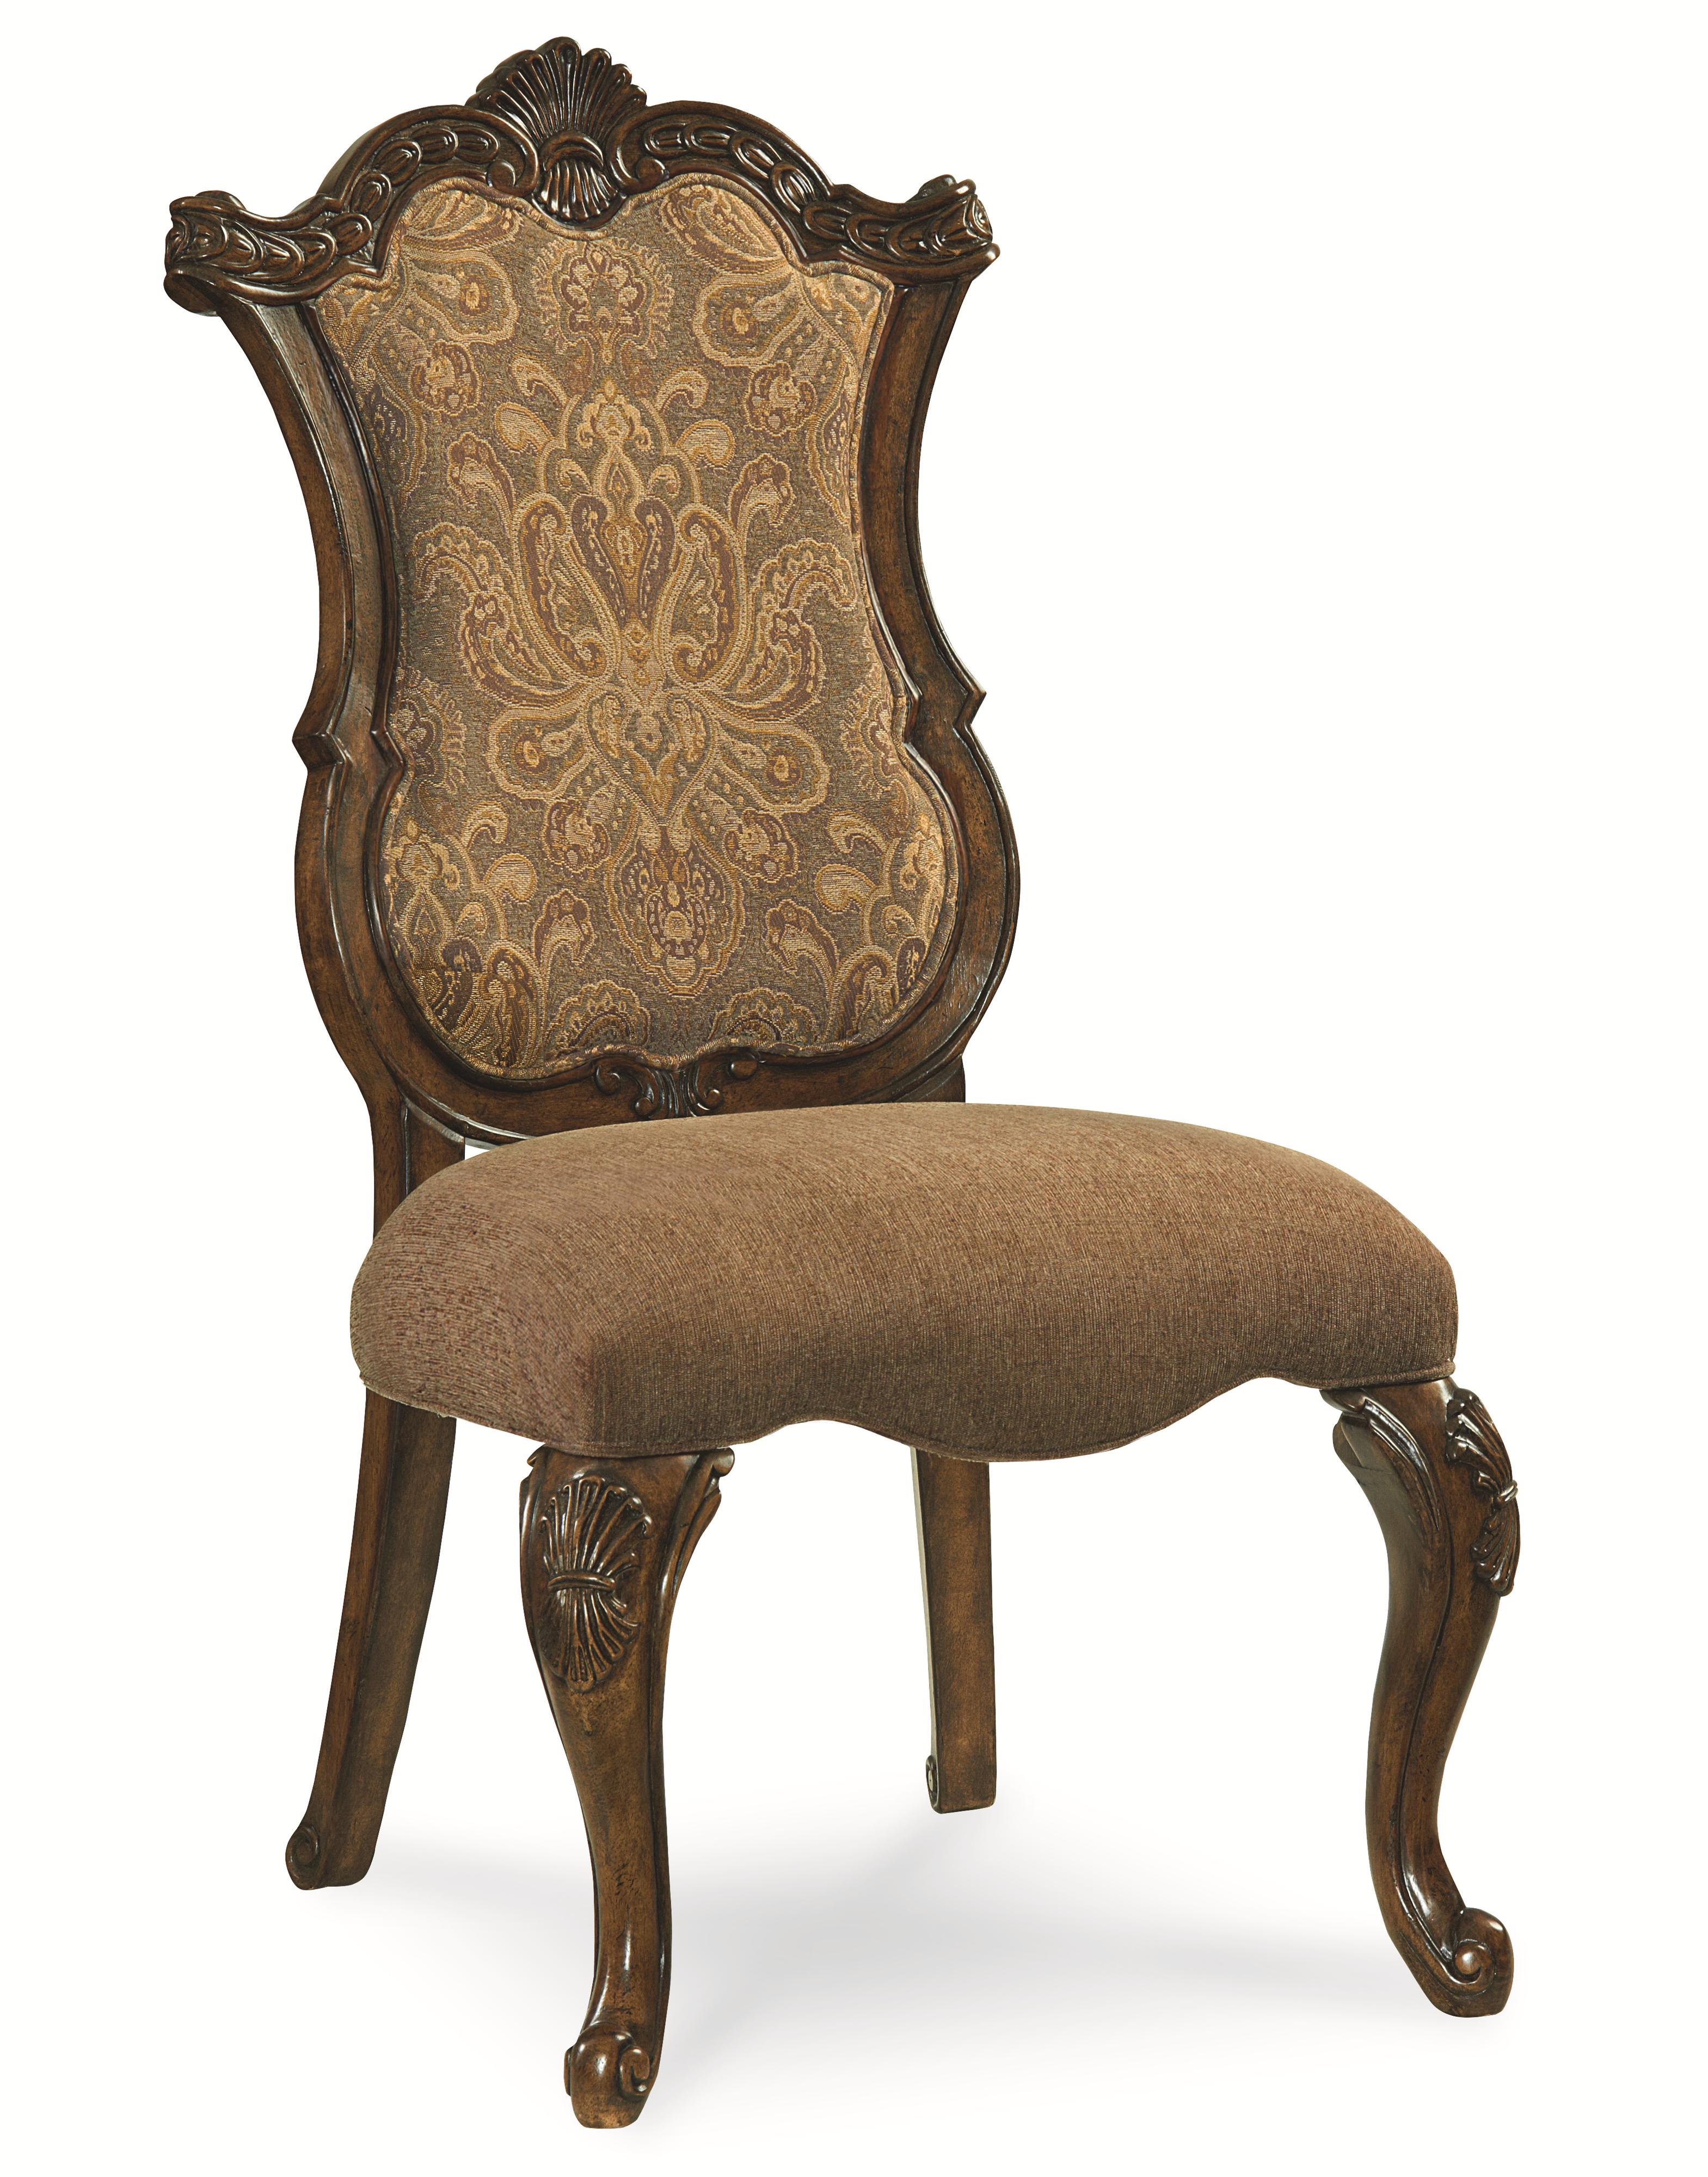 Legacy Classic Pemberleigh Upholstered Side Chair - Item Number: 3100-340 KD